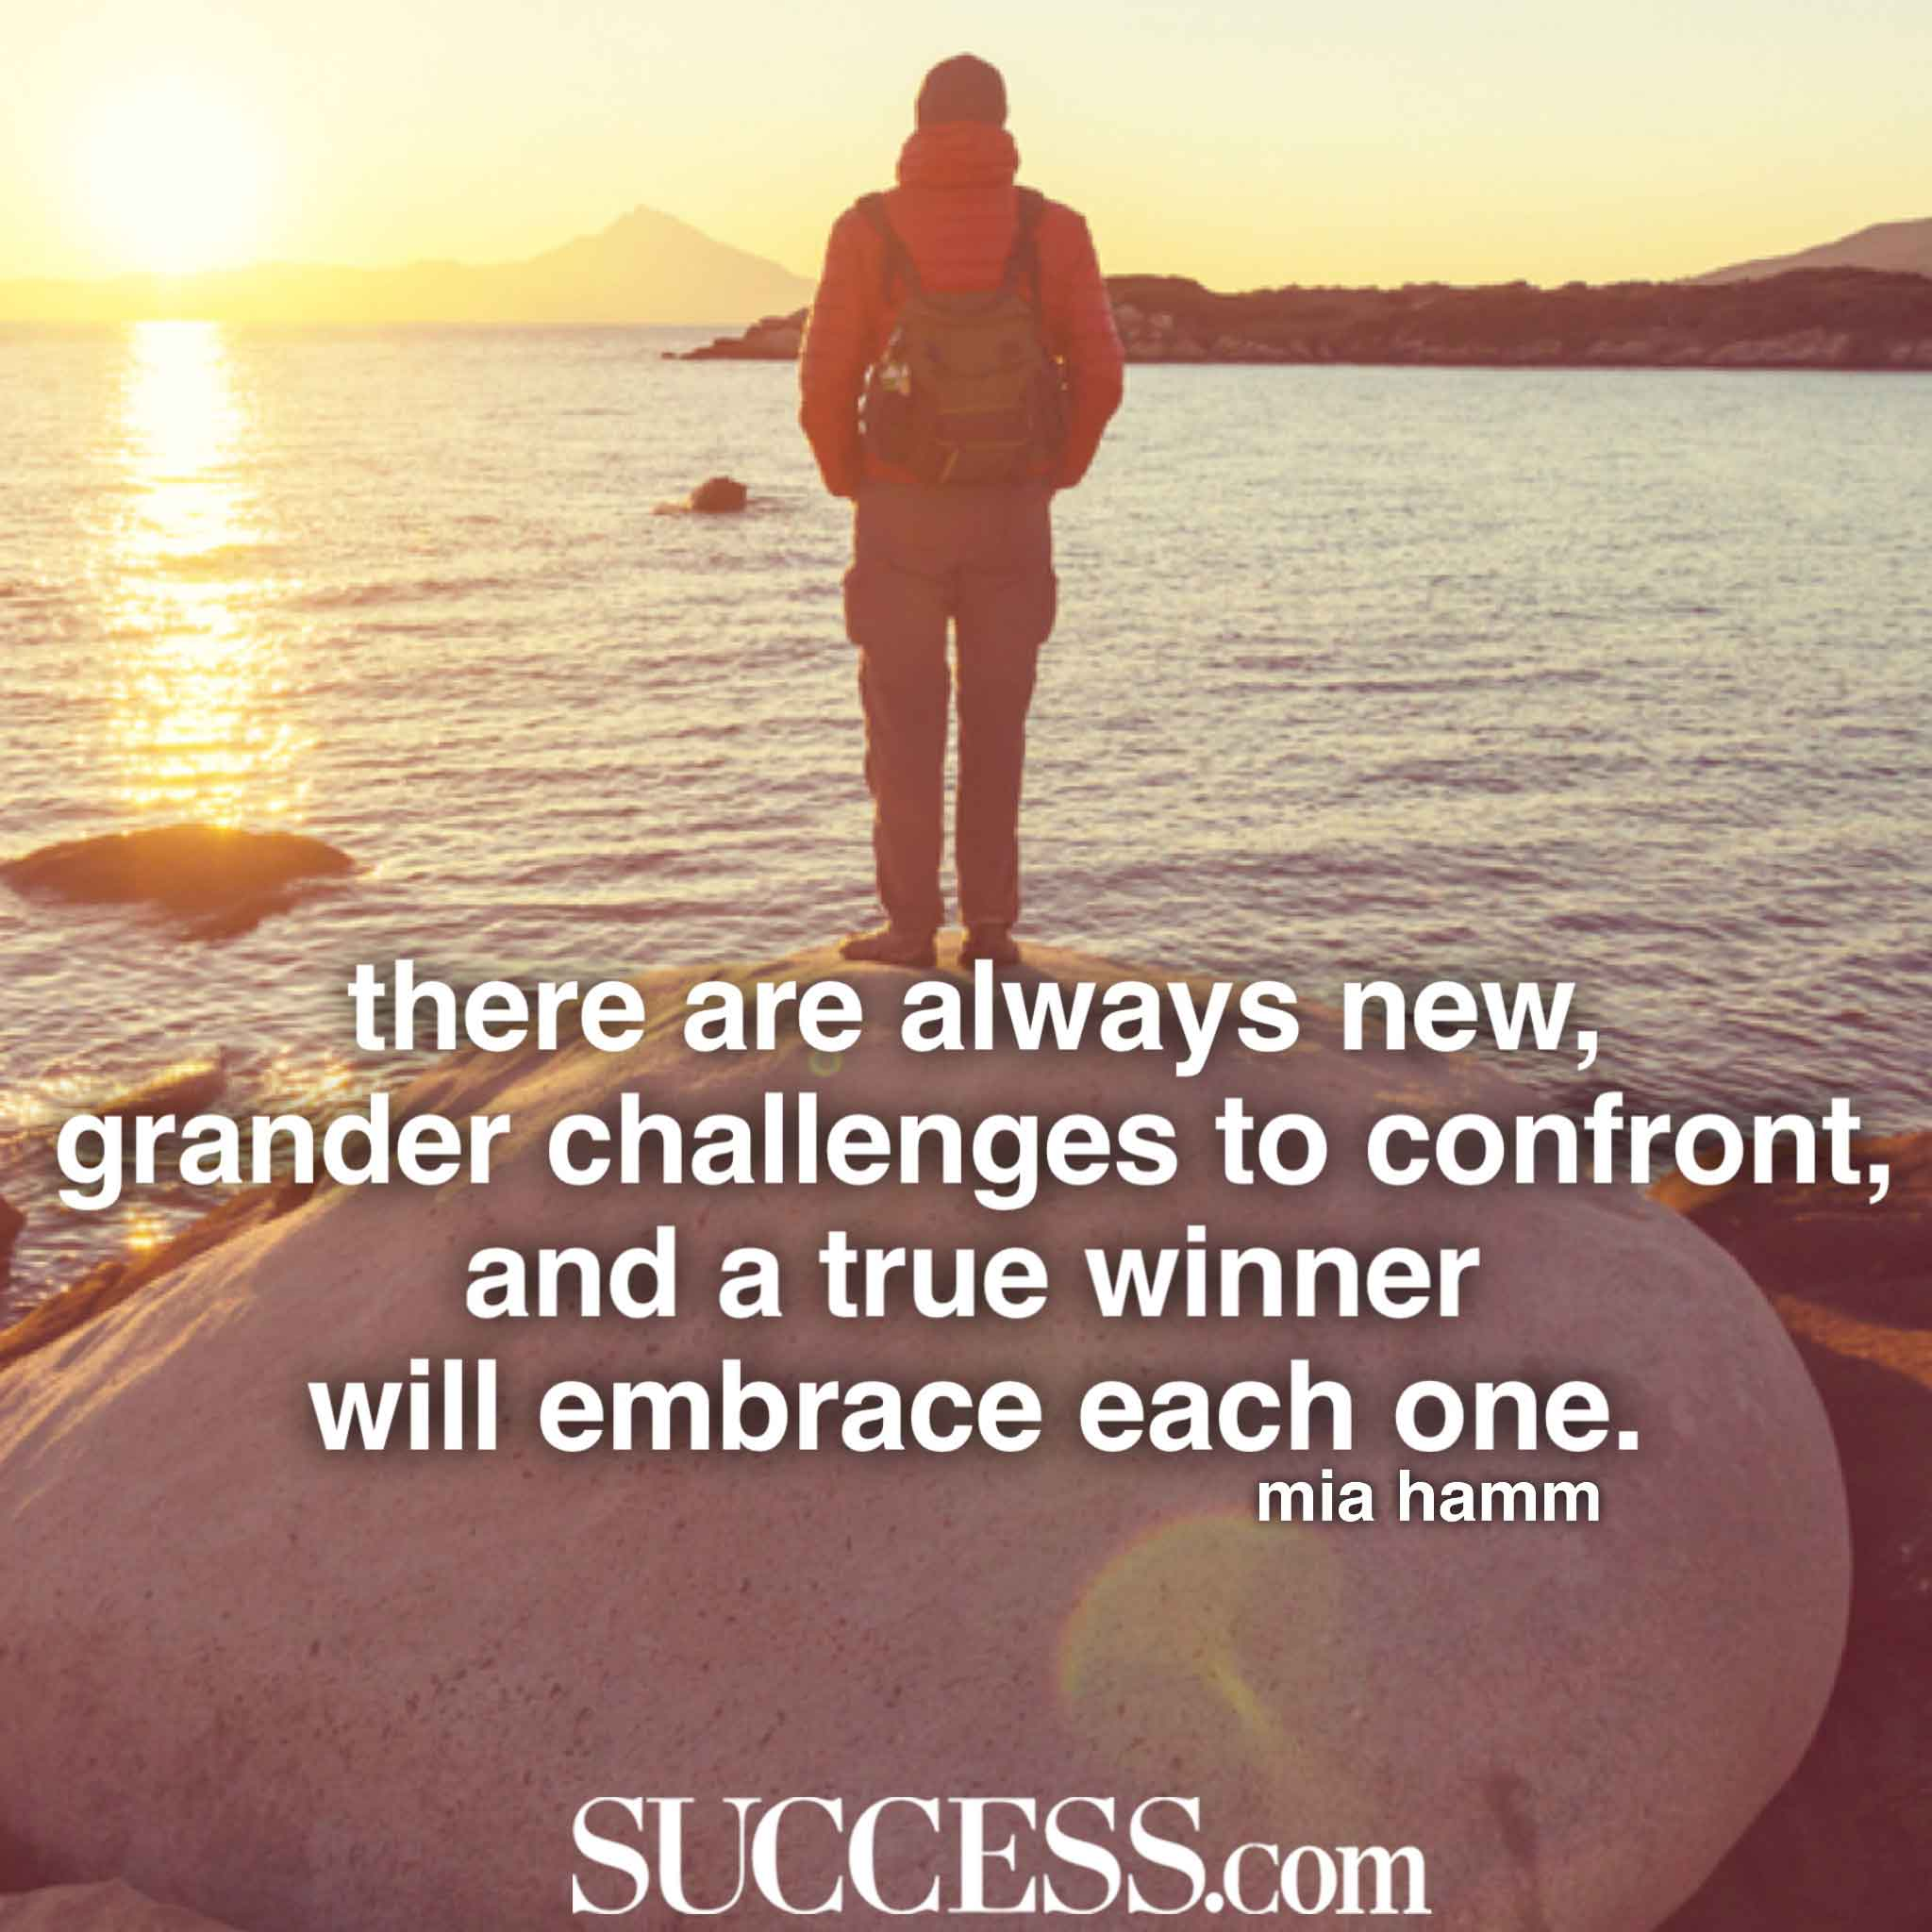 Winning Quotes | 13 Motivational Quotes About Winning